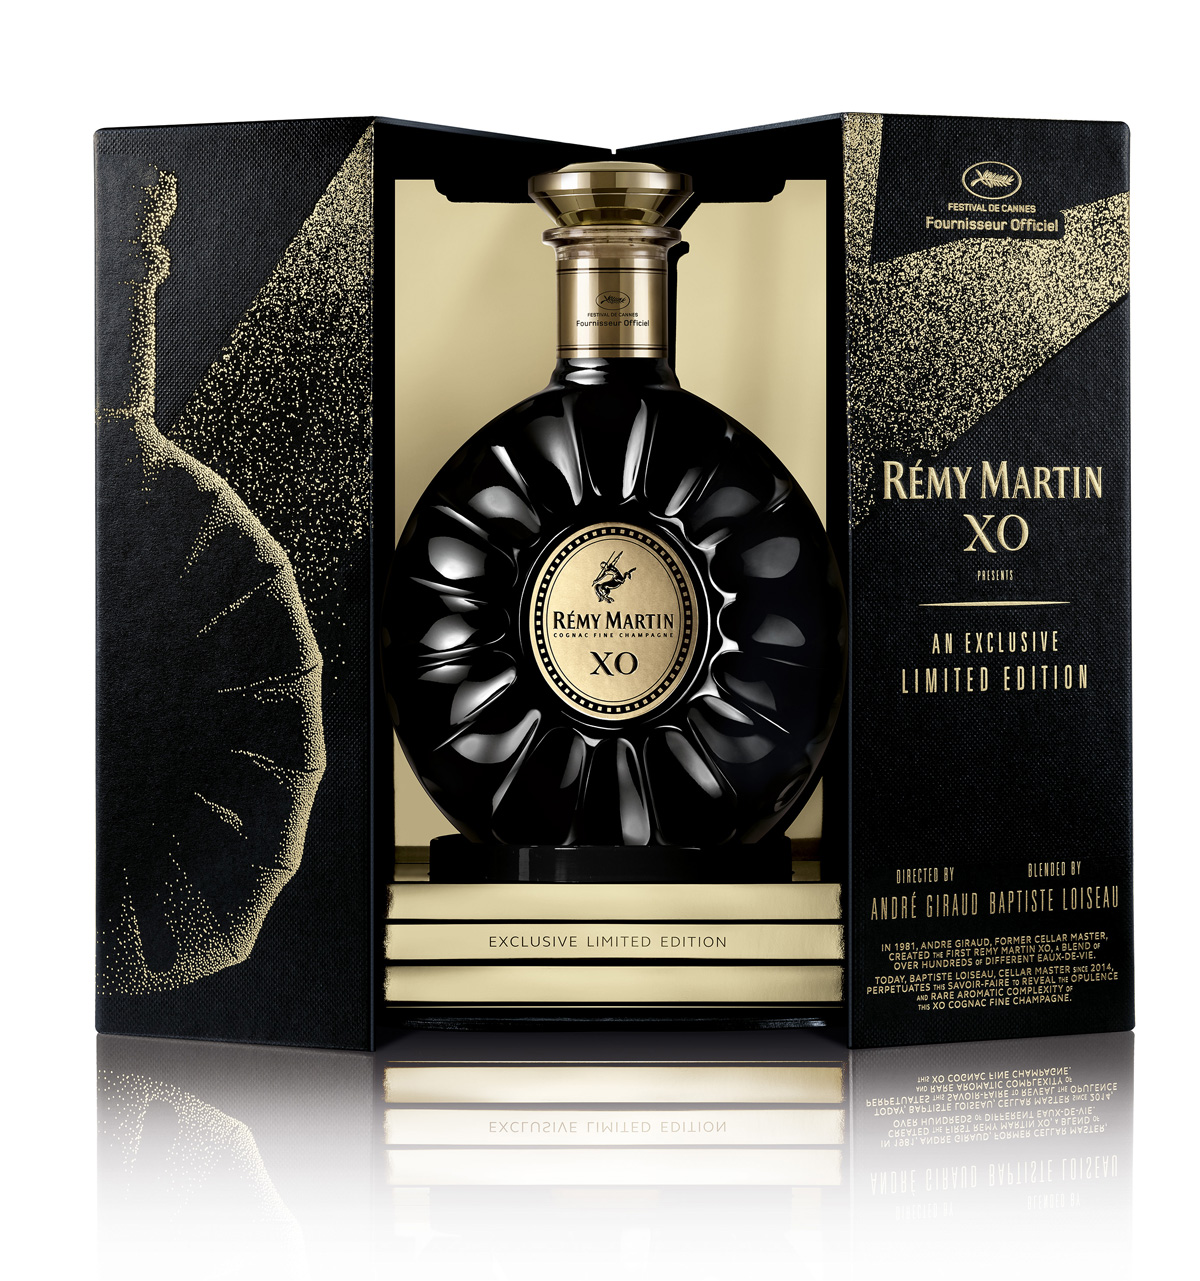 REMY_MARTIN_XO_Cannes_Bottle+Pack